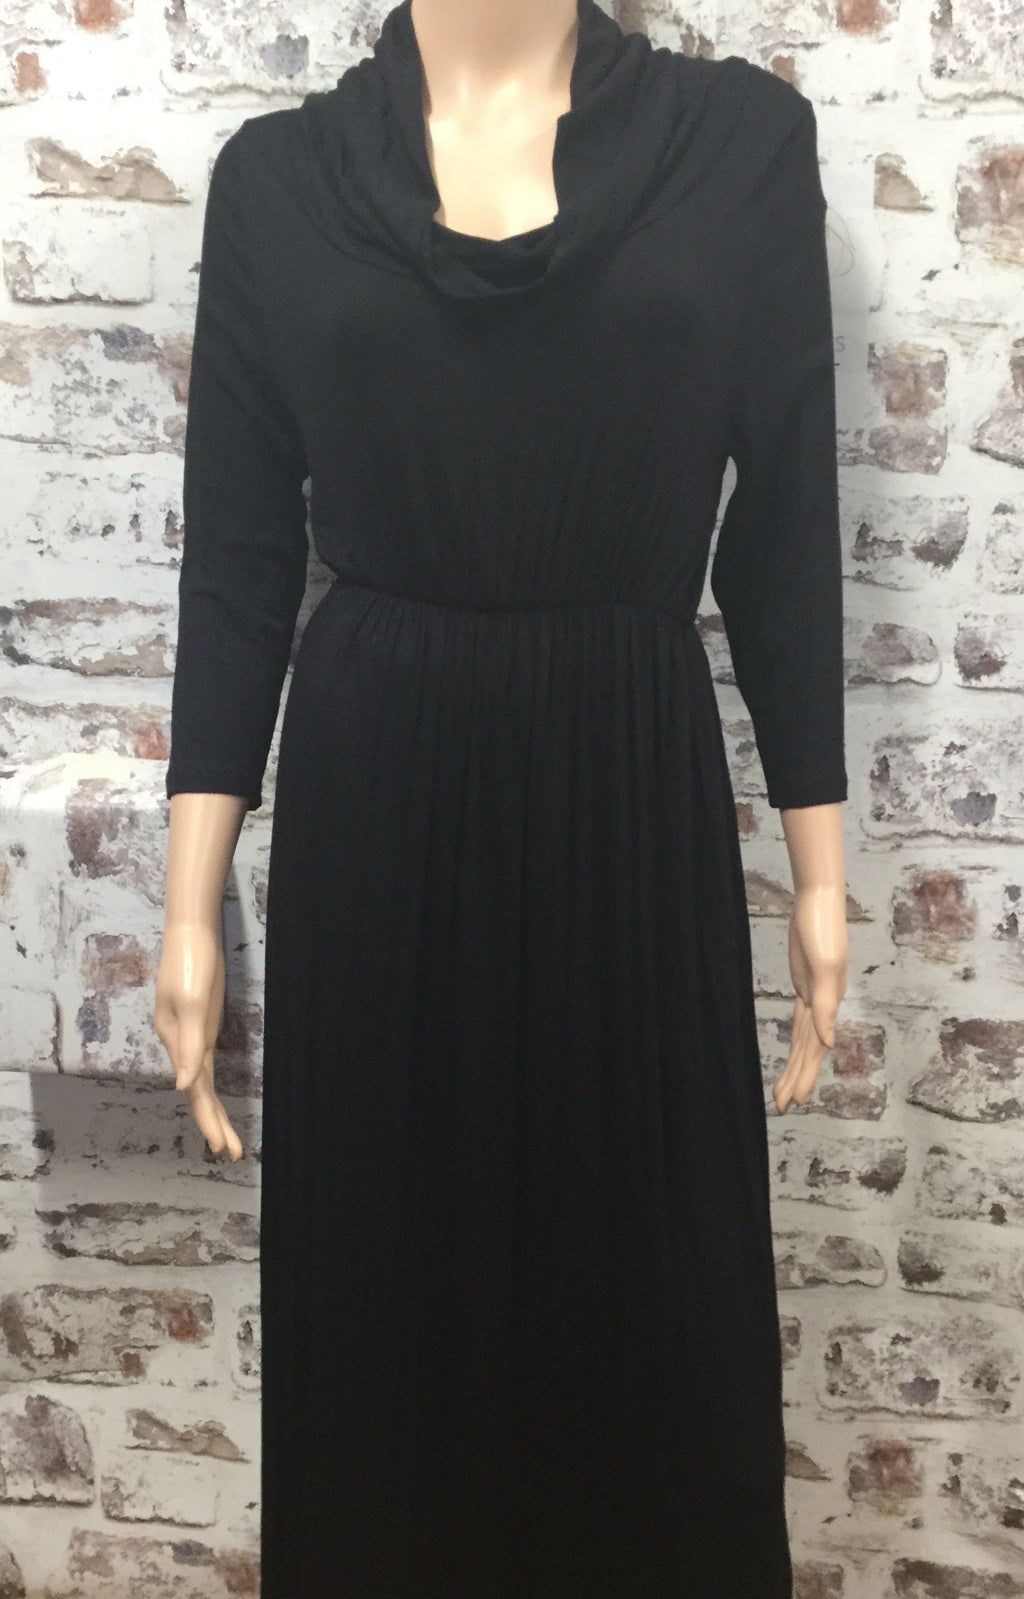 Black Cow Neck Dress